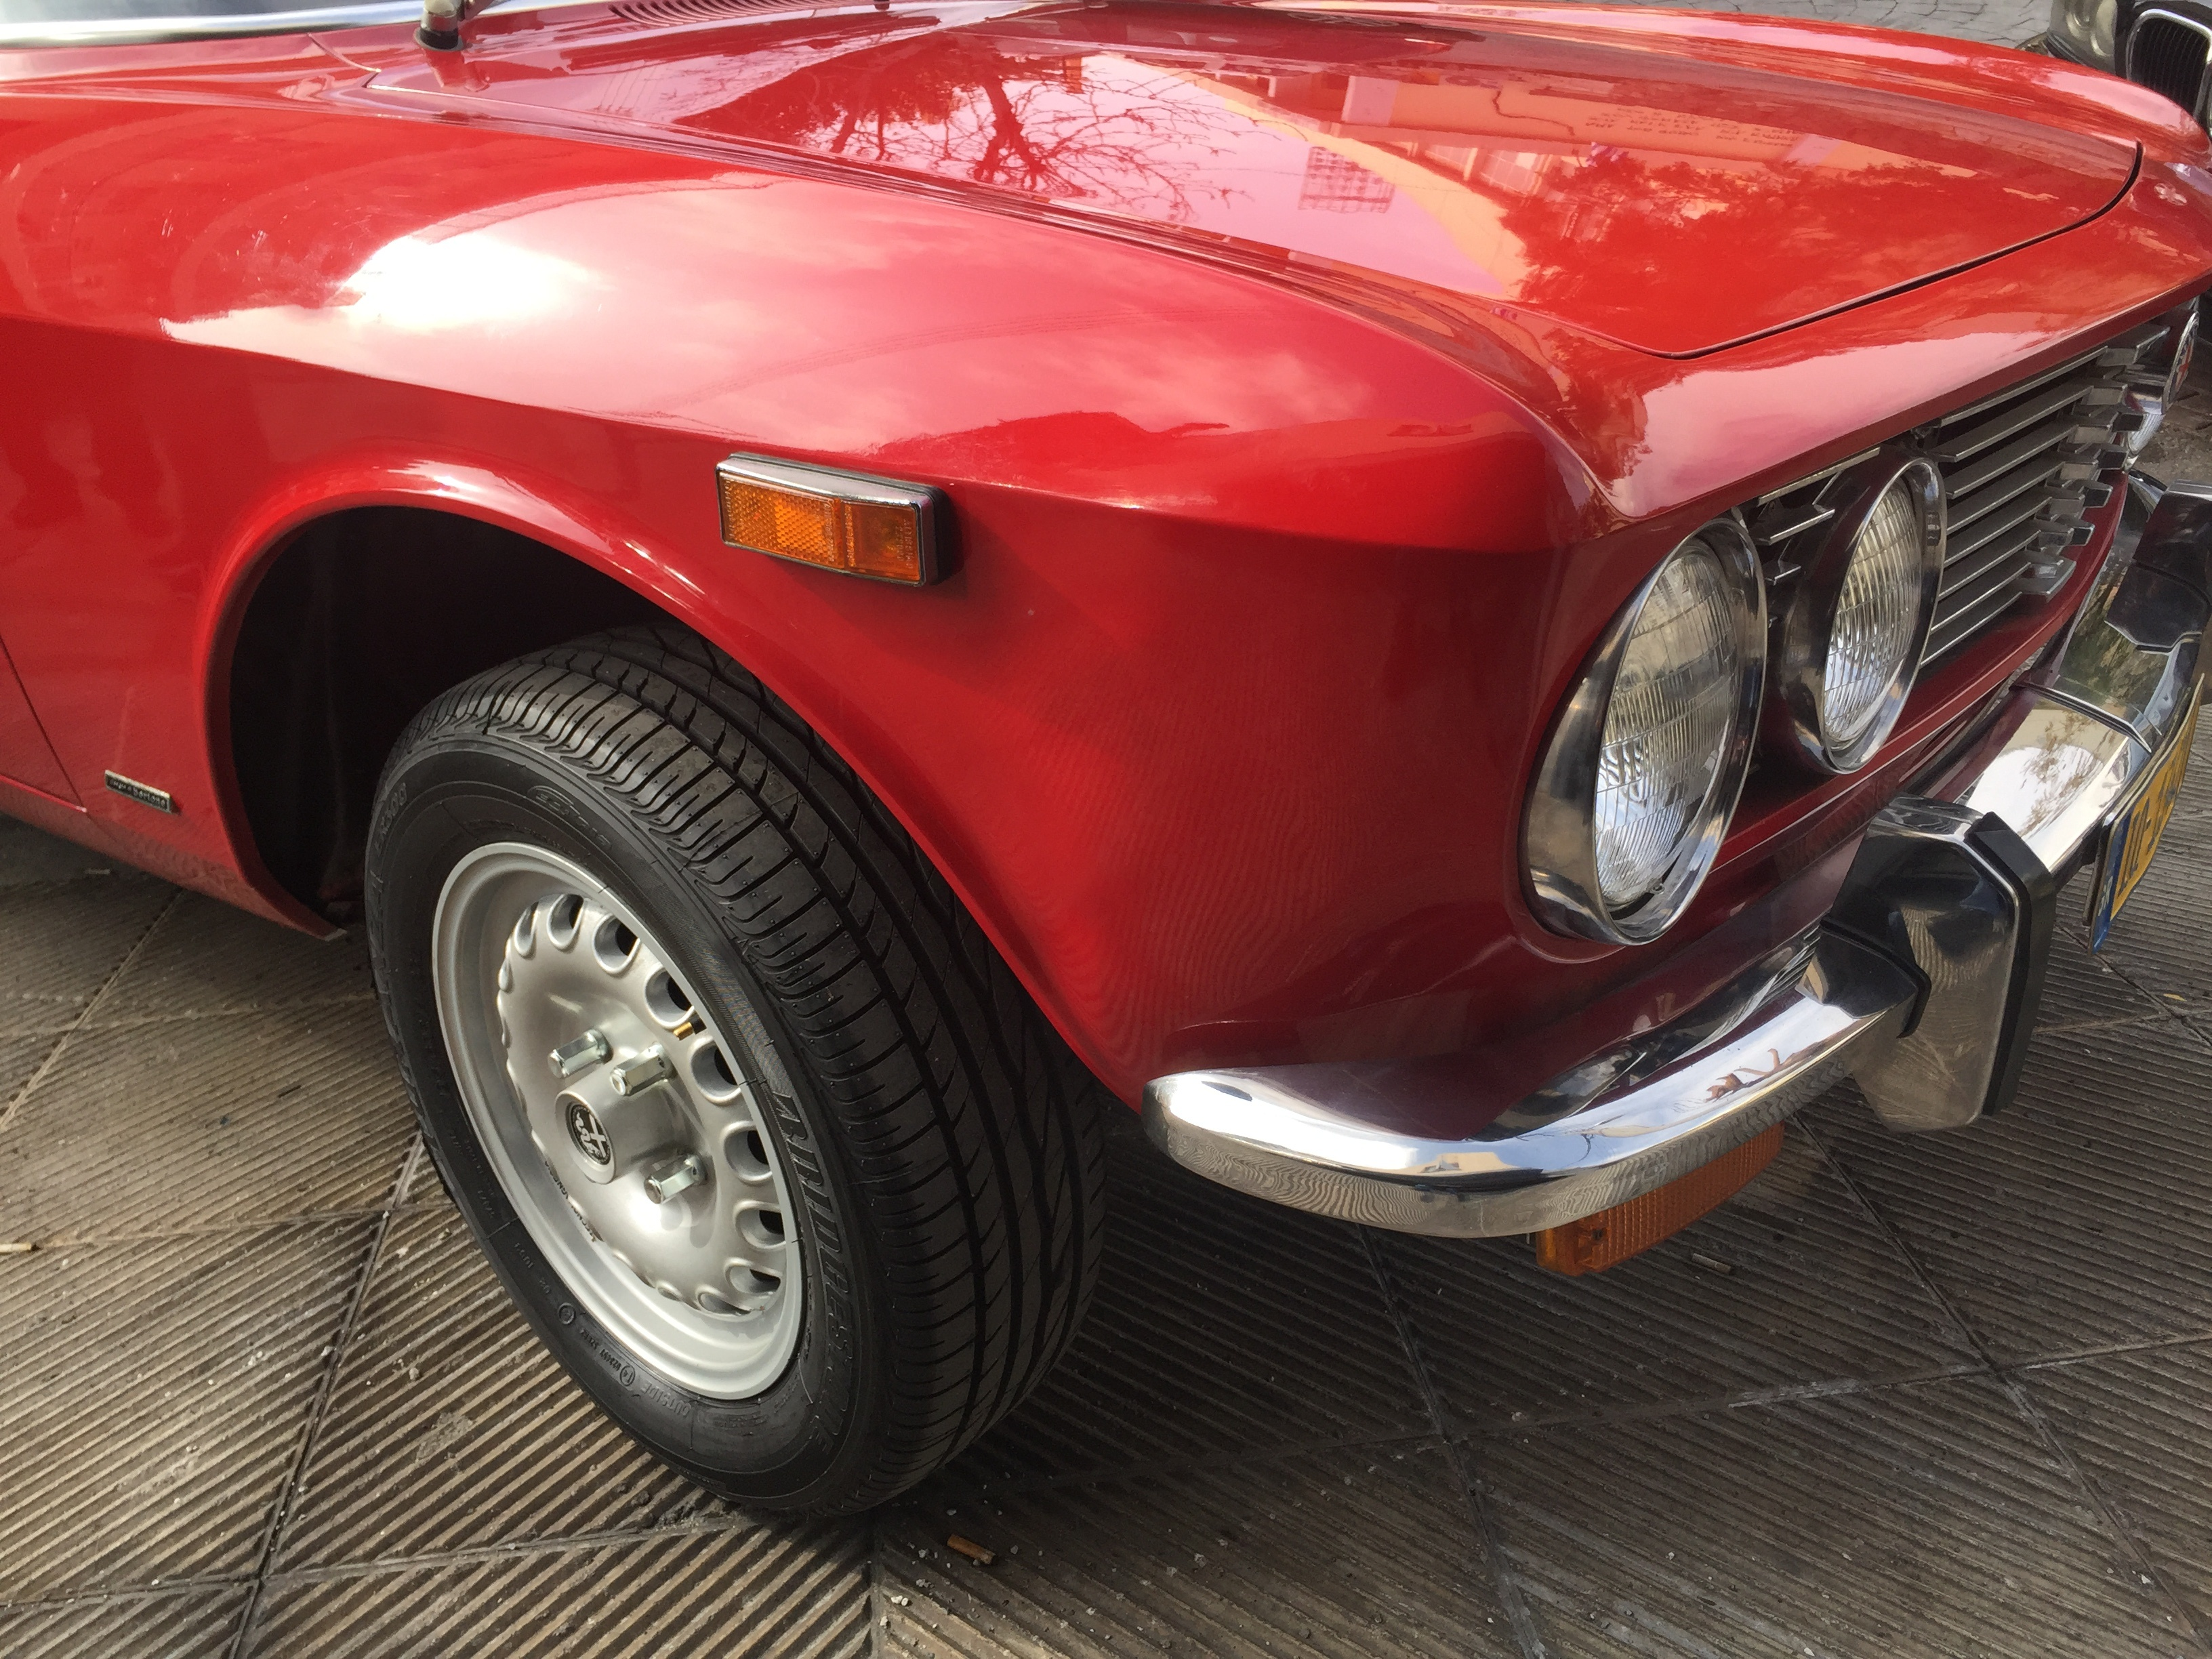 1974 Alfa Romeo 2000 Vintage car for sale